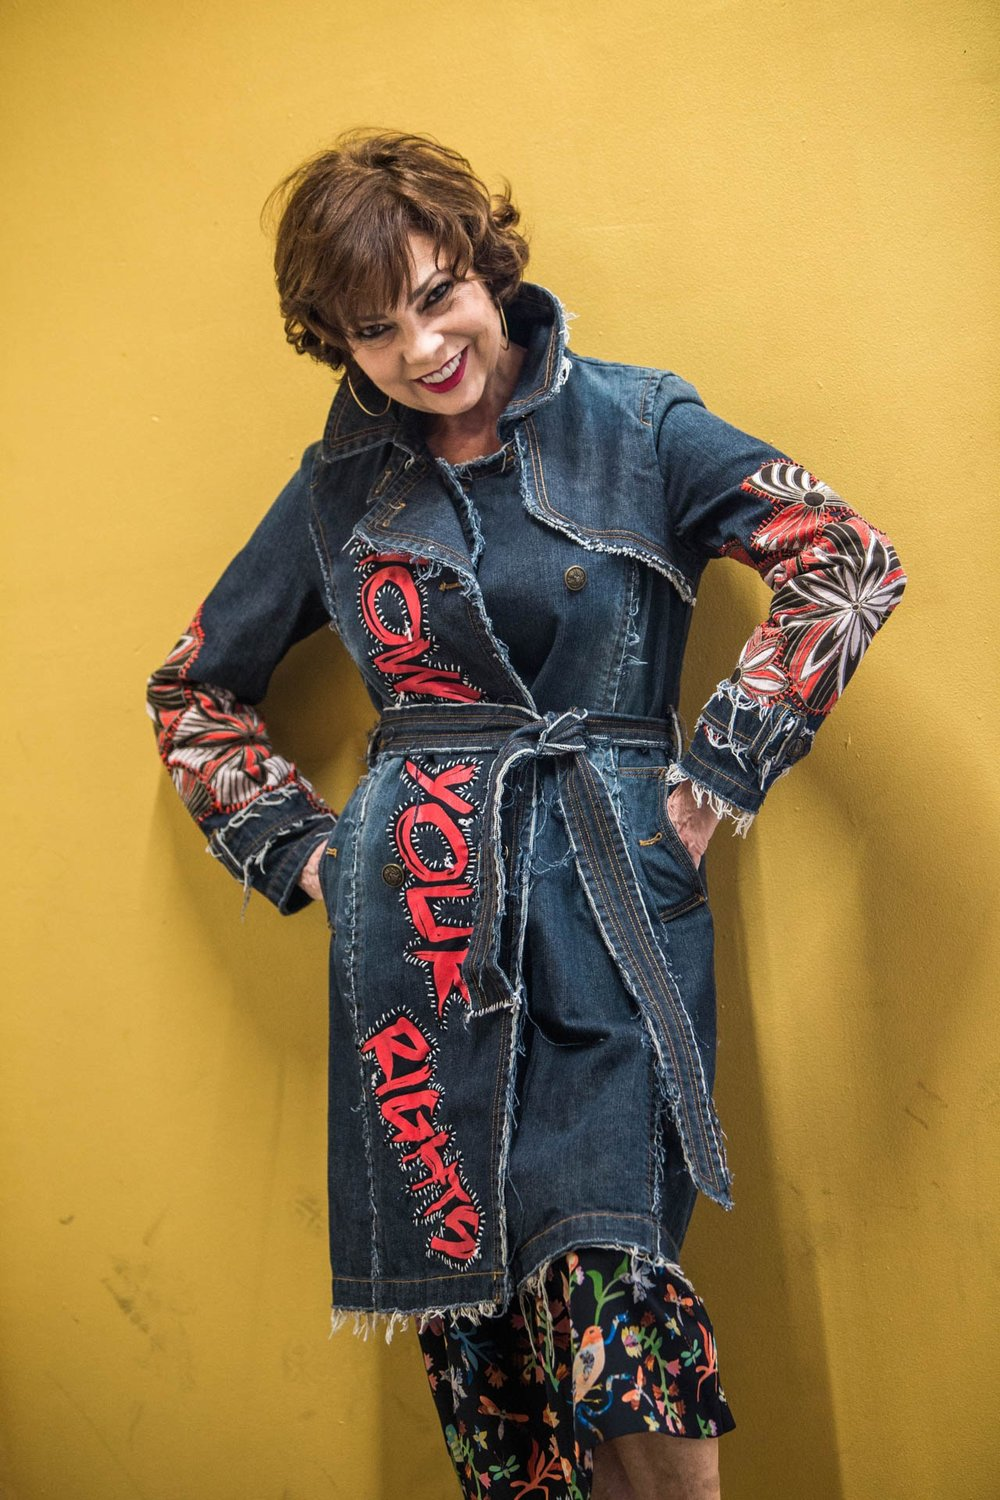 Claudia Gontovnik one of a kind recycled fashion - denim jacket with embellishments and embroidery made in Miami, South Florida